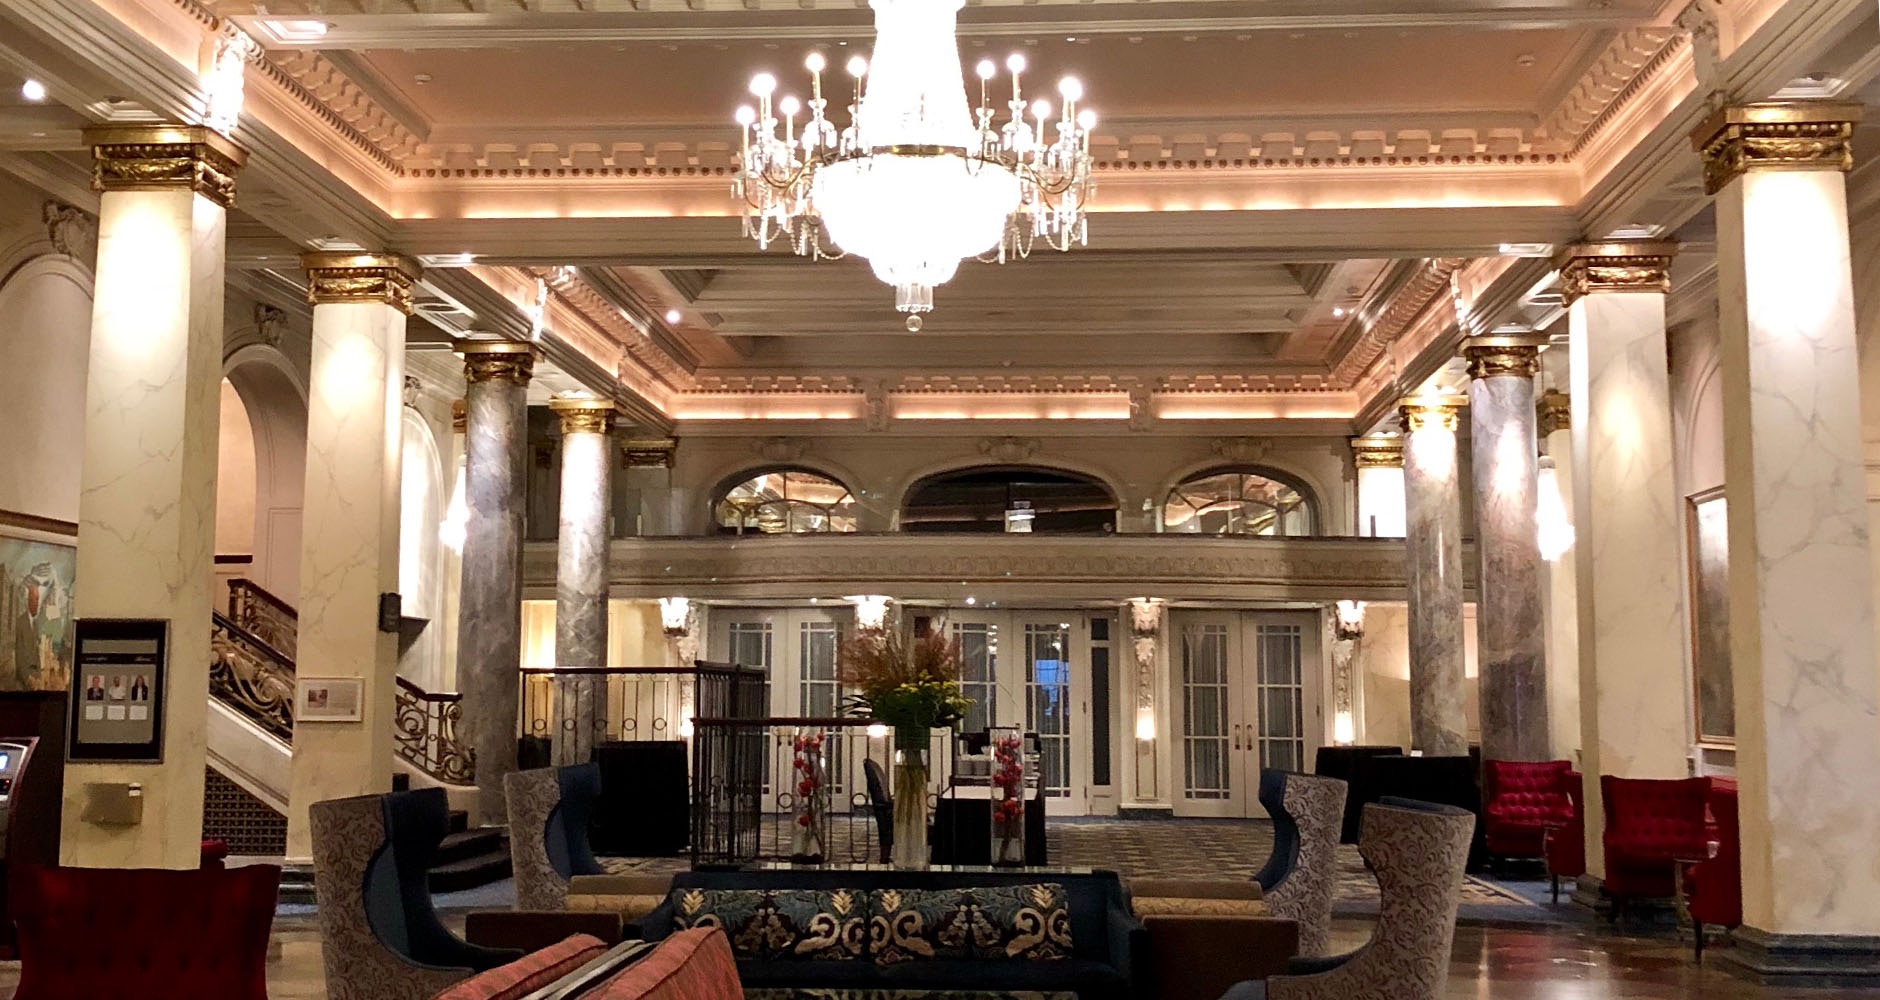 The lobby at the Fairmont Palliser in Downtown Calgary